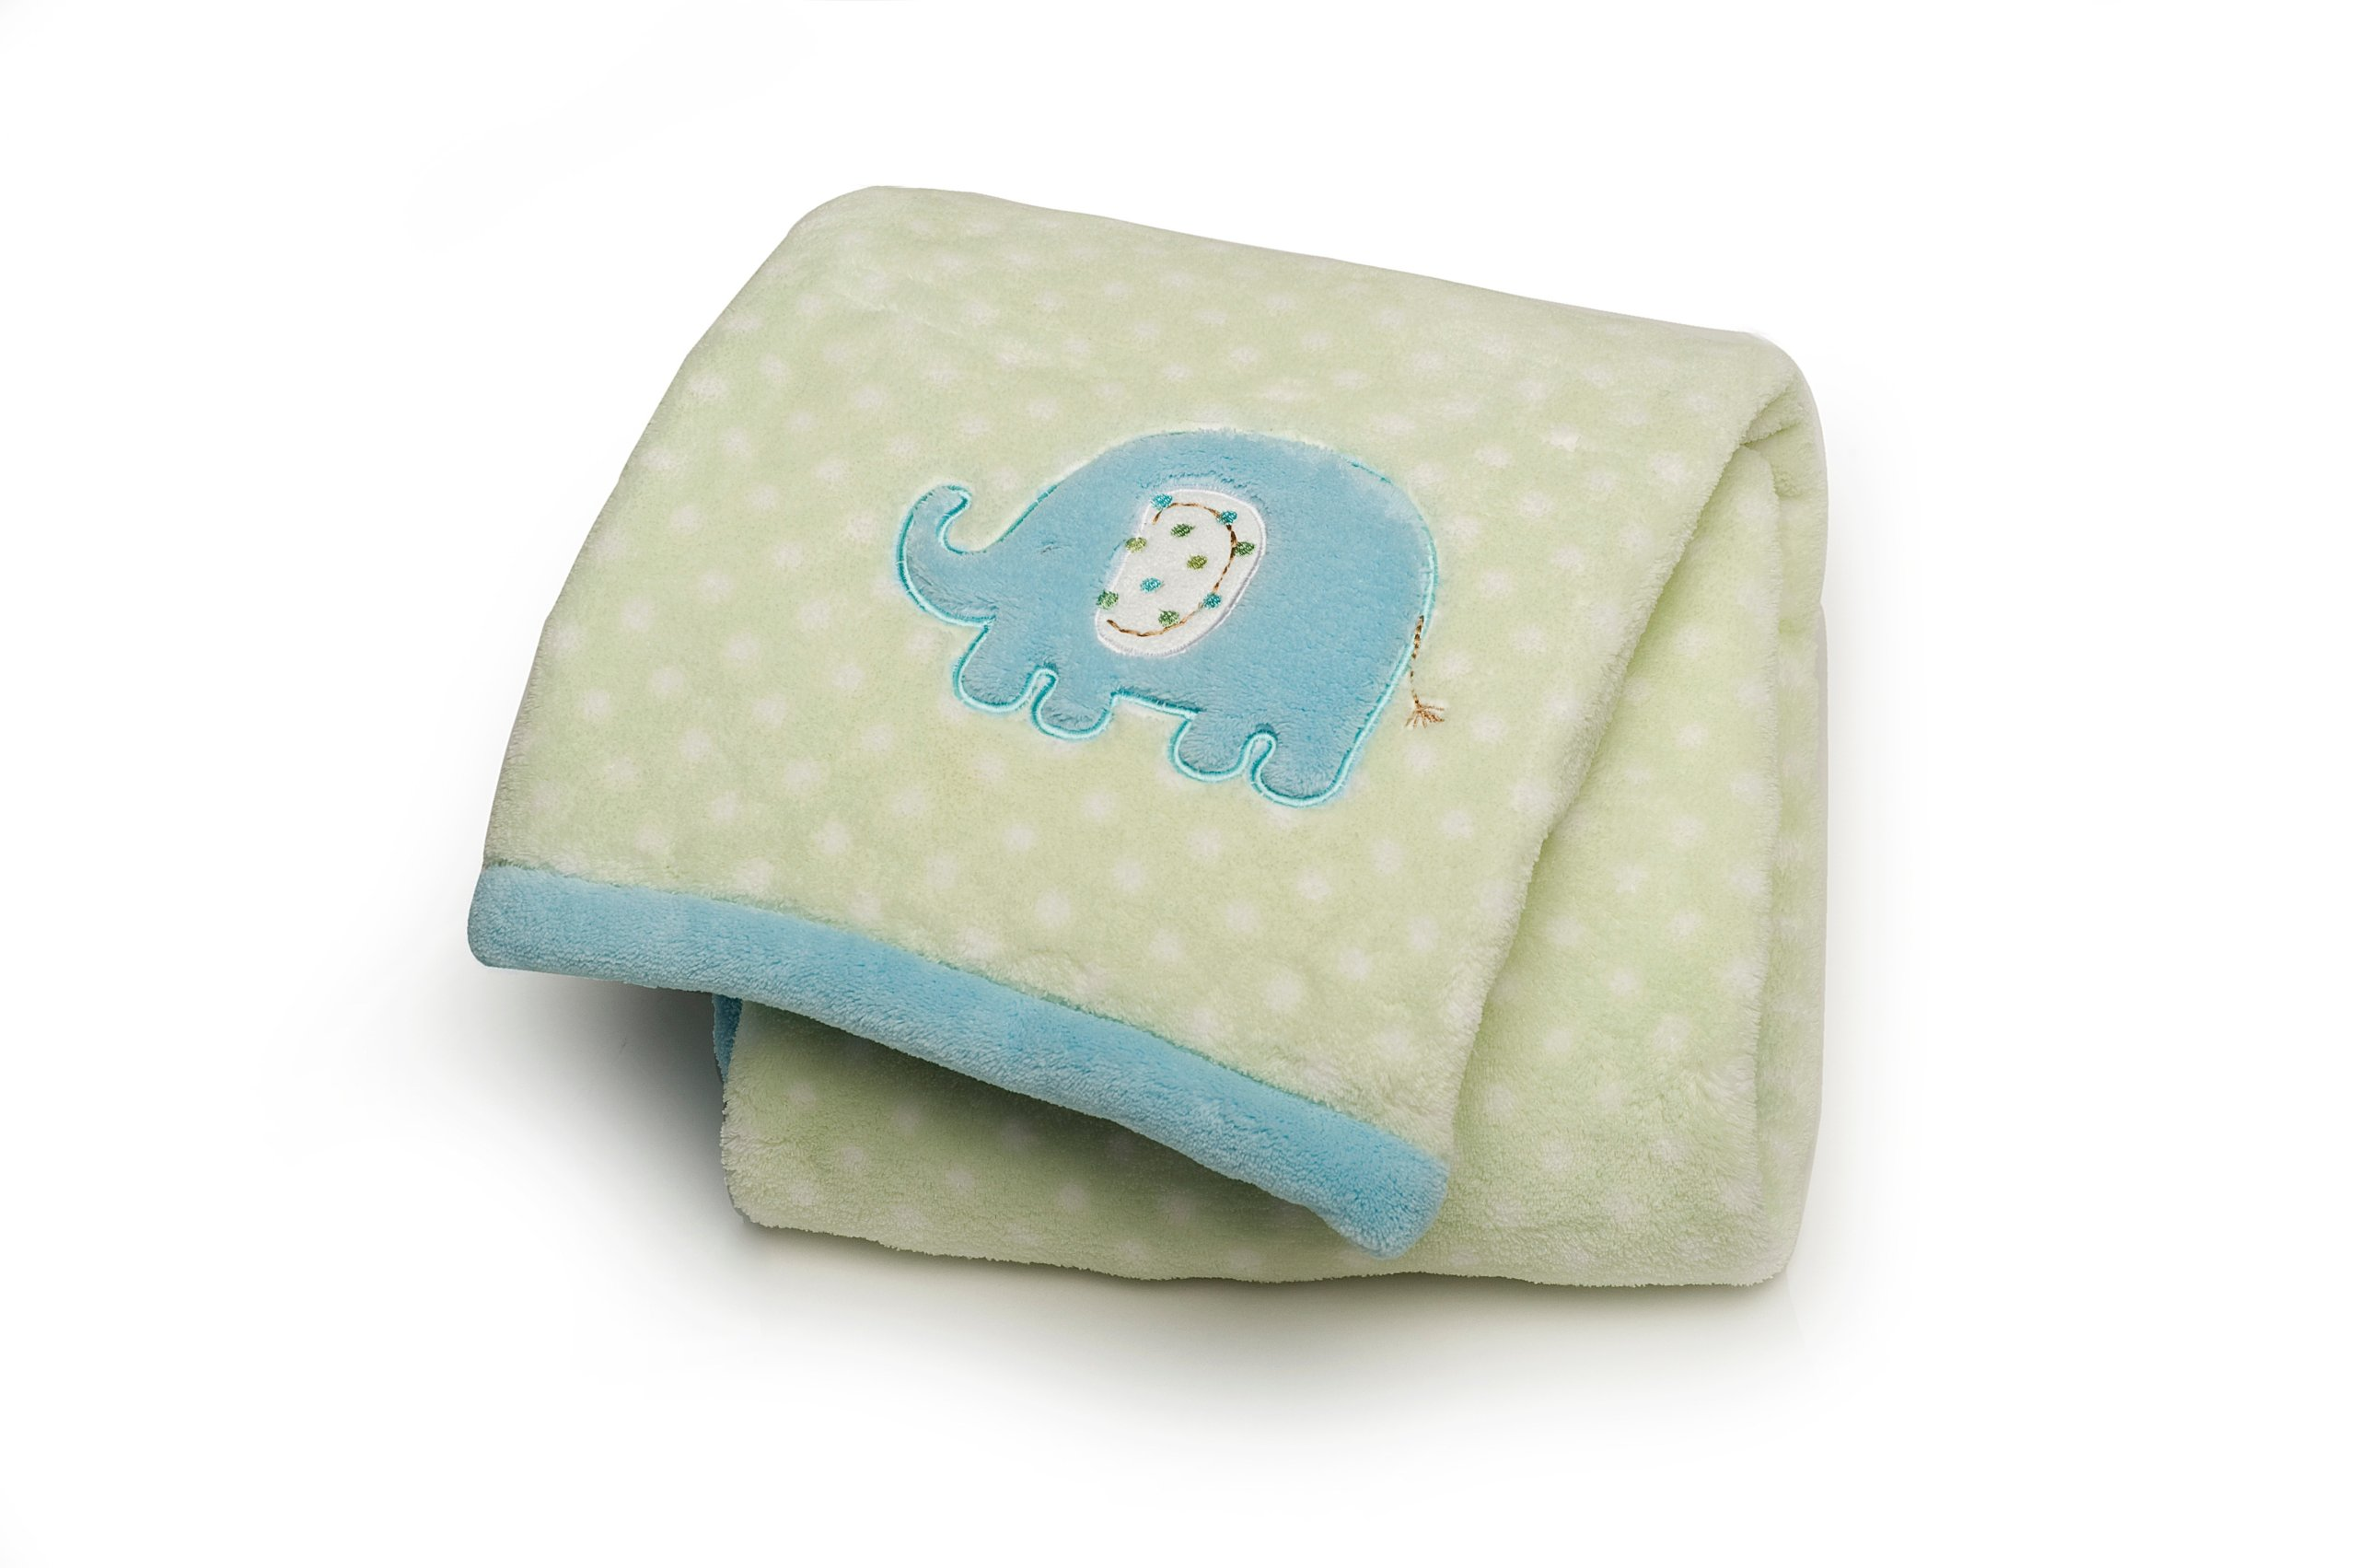 Carter's Easy Printed Embroidered Boa Blanket, Elephant (Discontinued by Manufacturer)